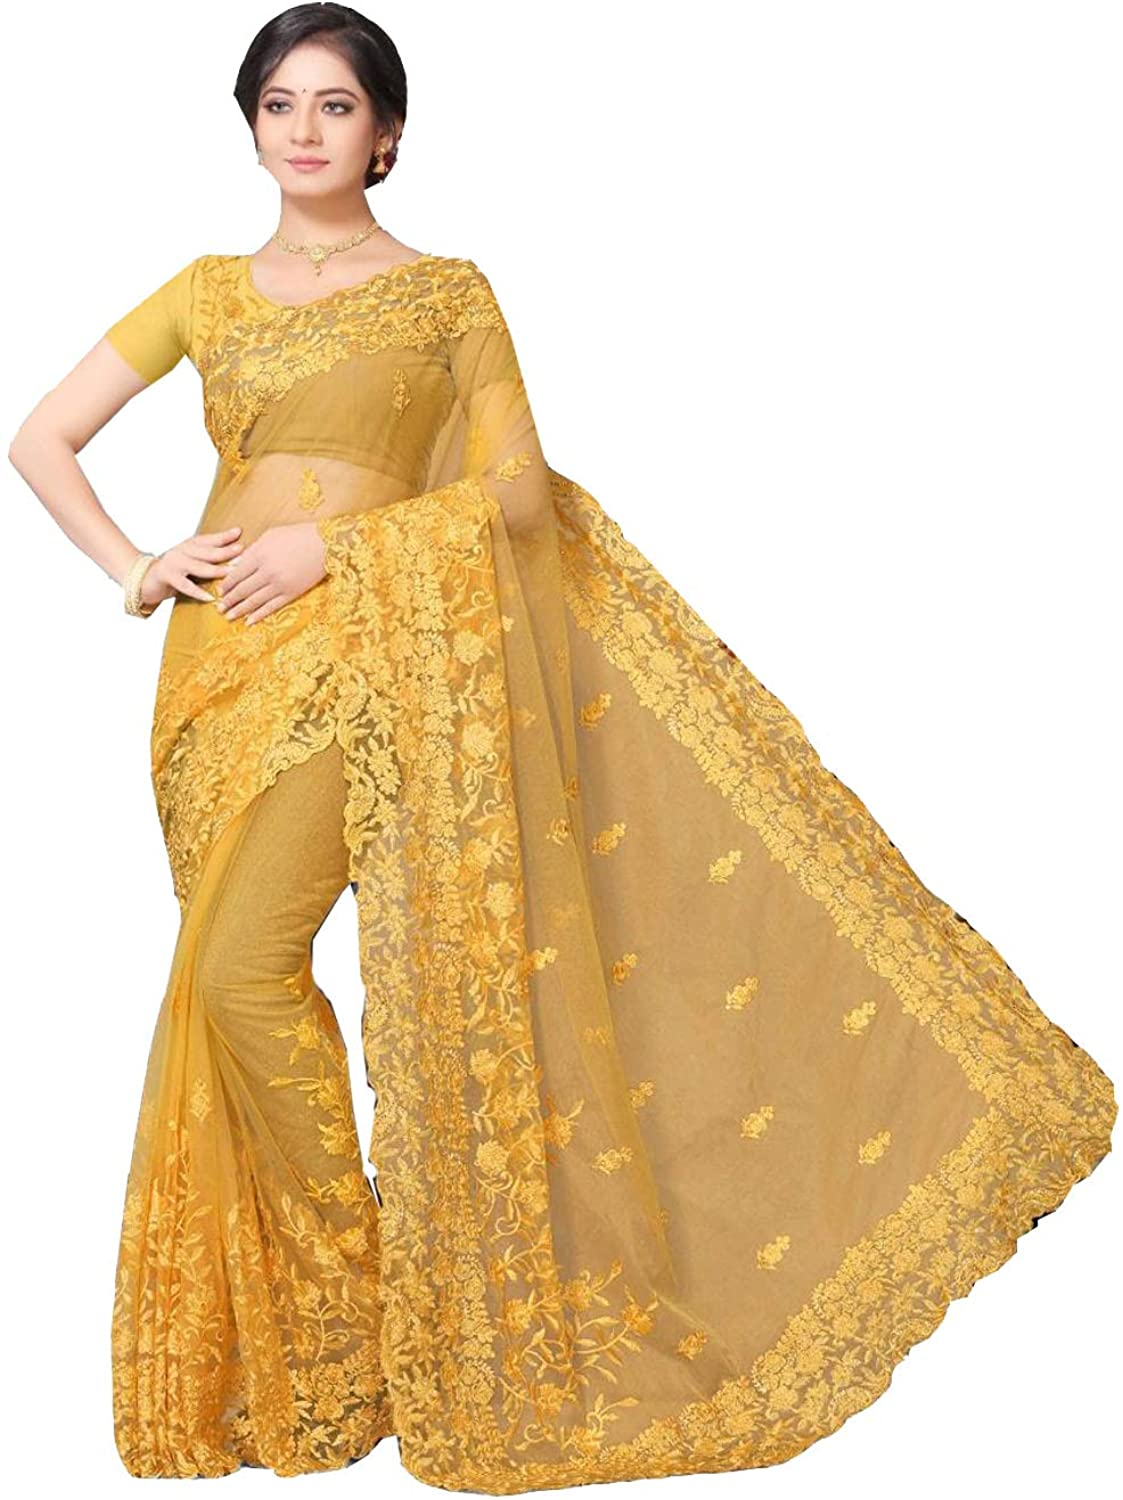 Indian Saree for Women Ethnic Sari Musterd Net Sari with Unstitched Blouse. ICW2772-5